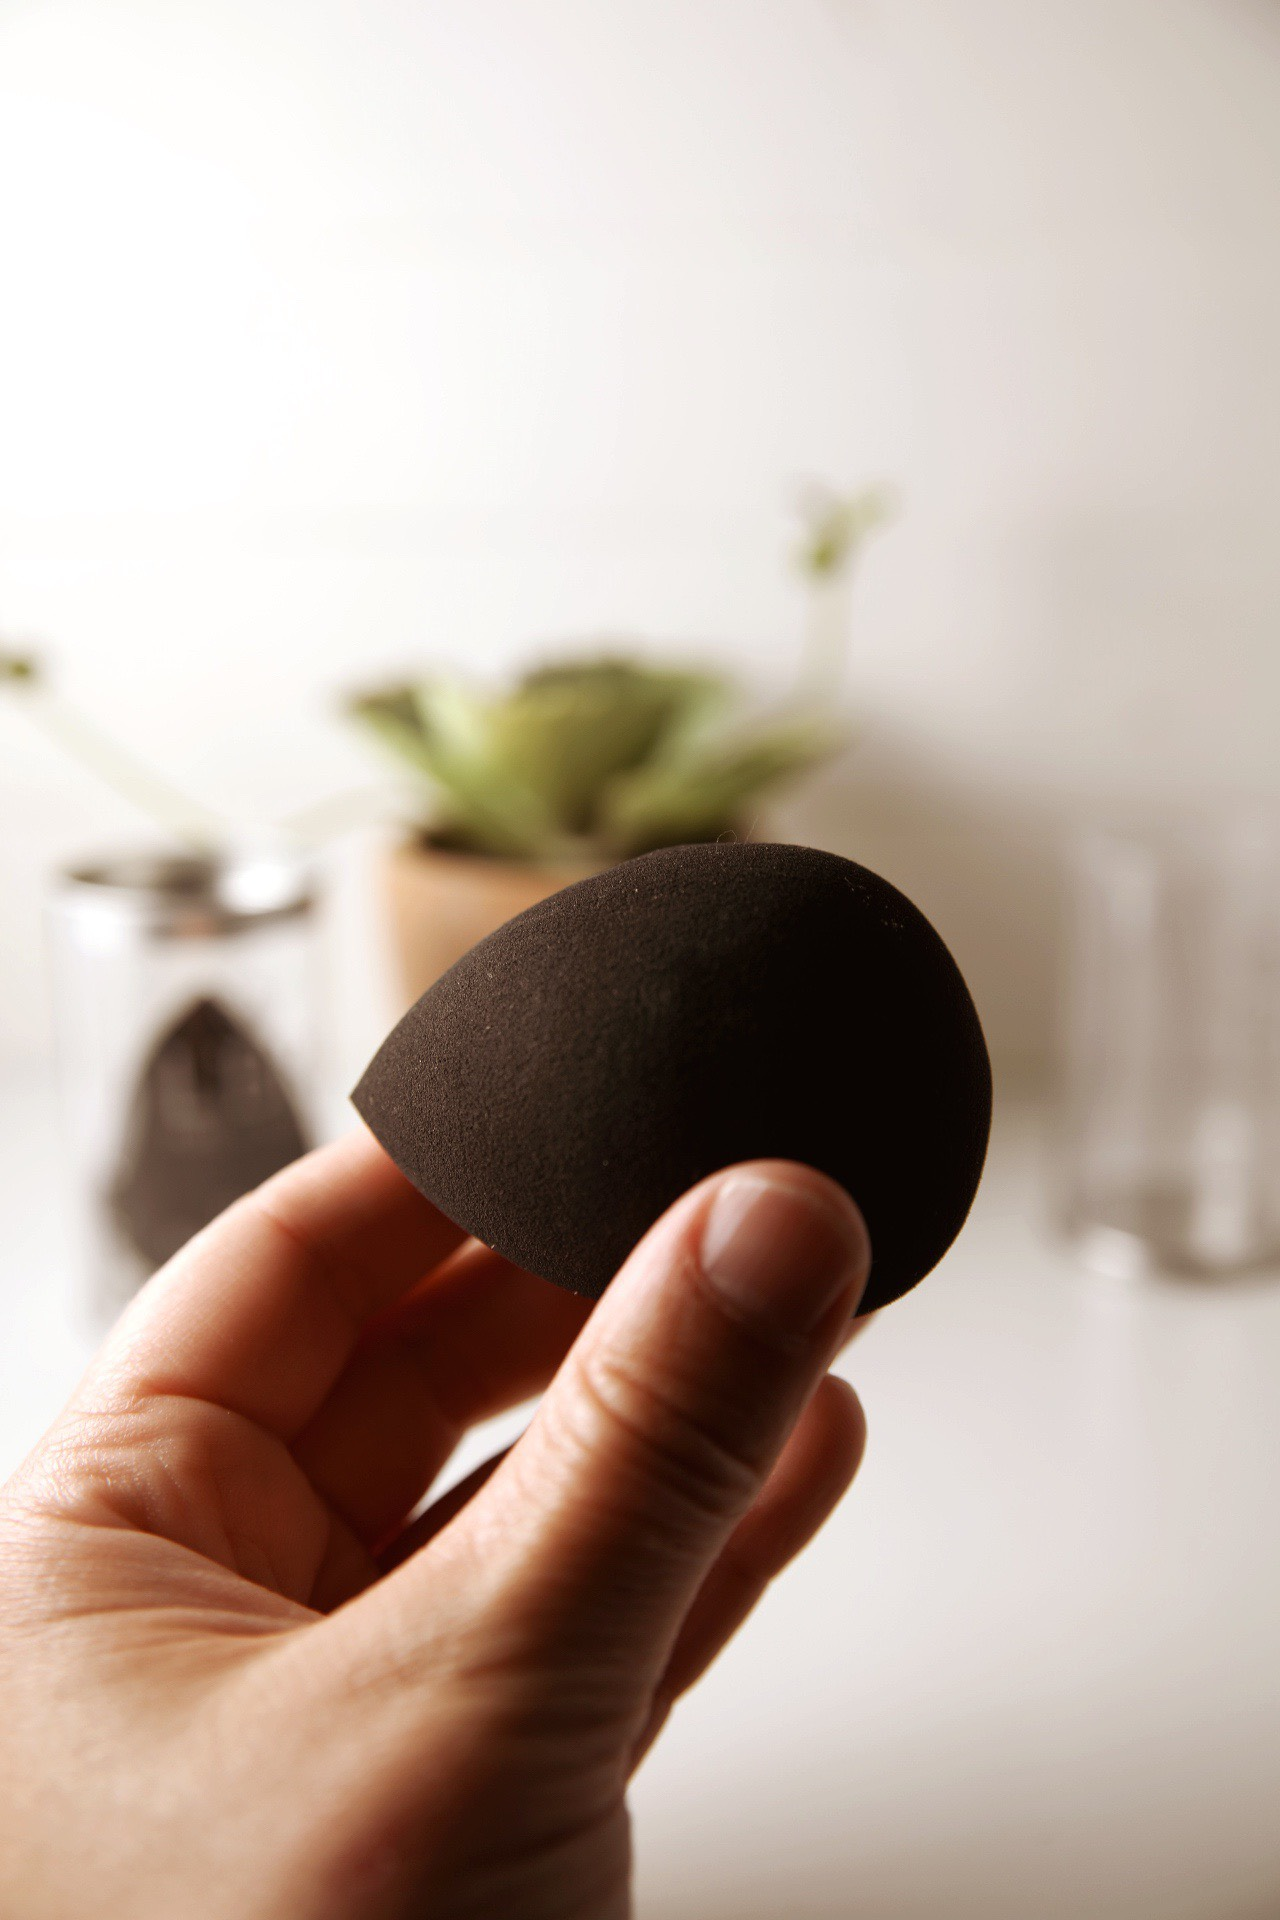 Best dupe for a Beauty Blender- the L'Bri Flawless Blending Sponge...and it's only $7.50!